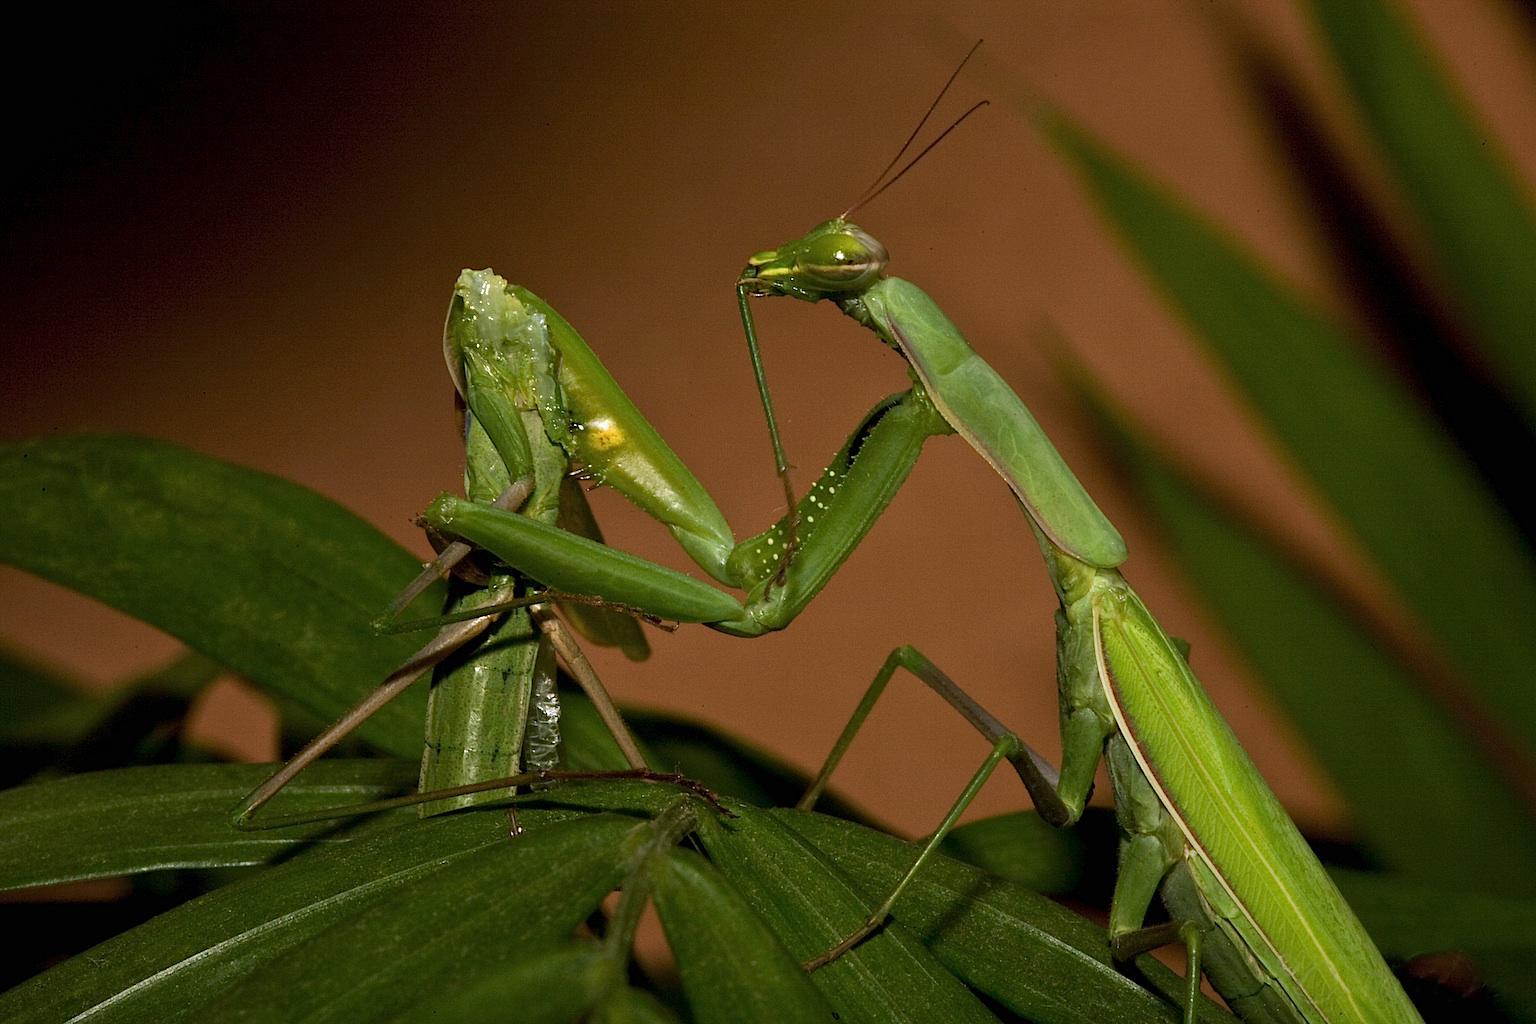 Praying Mantis Sexual Cannibalism, Taken from http://commons.wikimedia.org/wiki/File:Praying_Mantis_Sexual_Cannibalism_European-37.jpg.